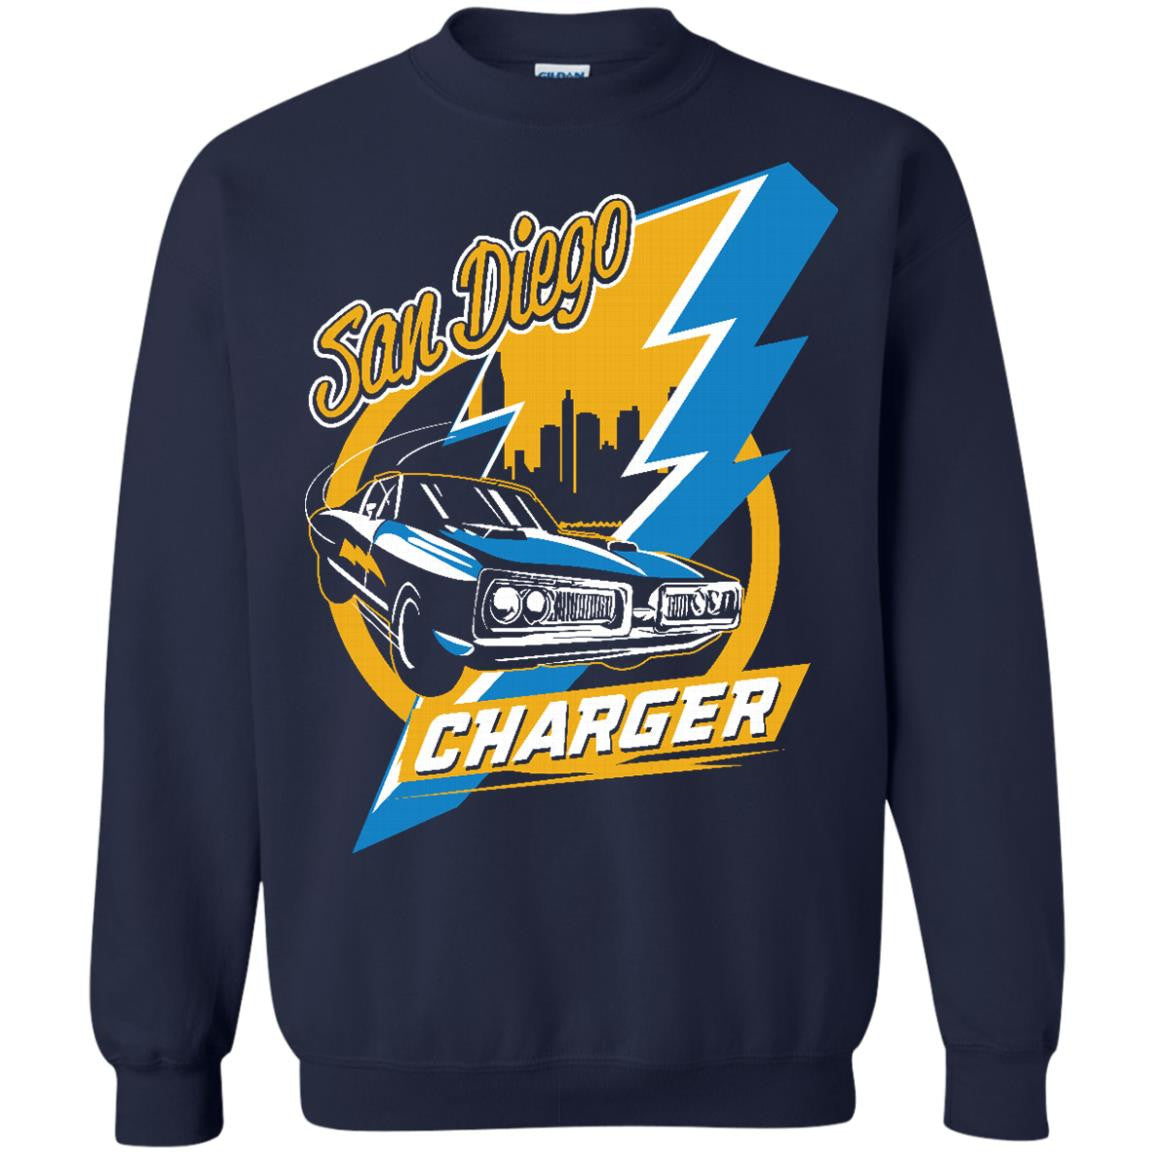 Los Angeles Chargers Shirts San Diego City Skyline T